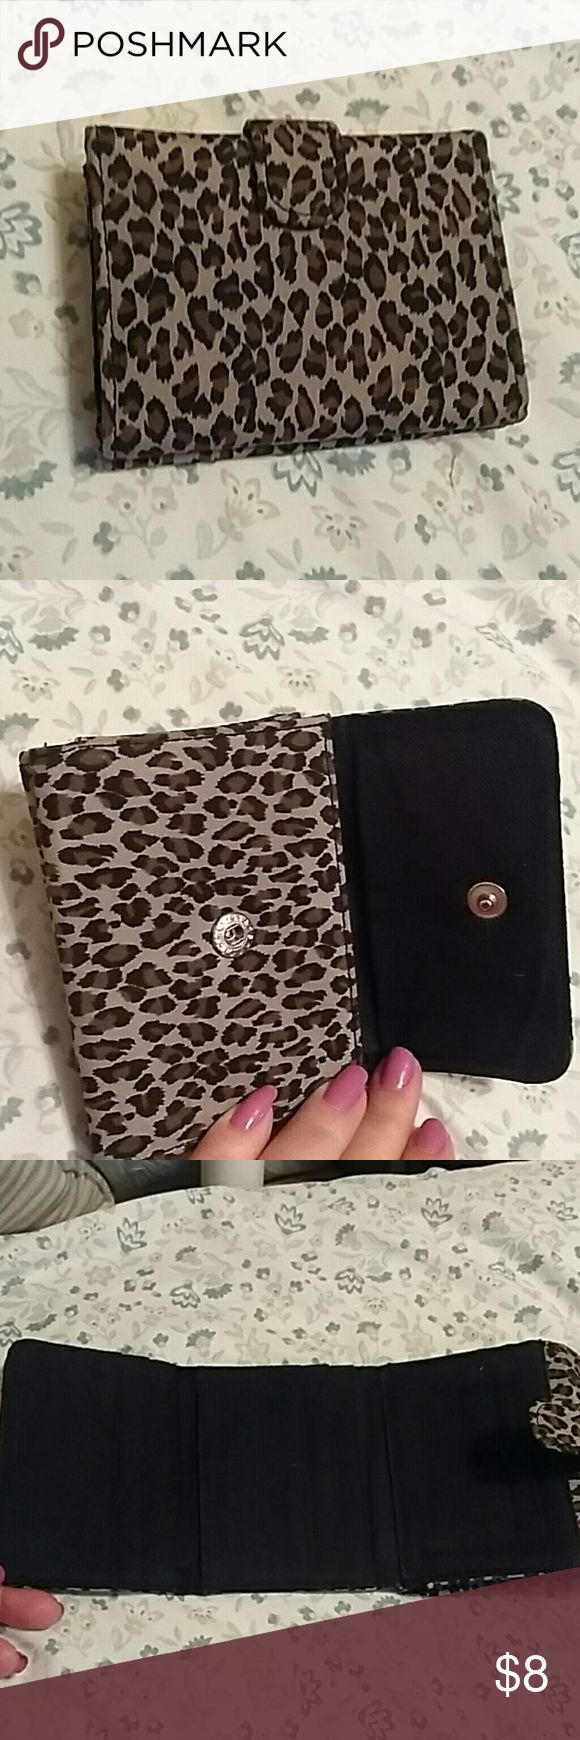 Leopard print wallet EUC leopard print wallet with six credit card pockets, an id pocket, and front buttoned pocket for cash or coins. unbranded Accessories Key & Card Holders